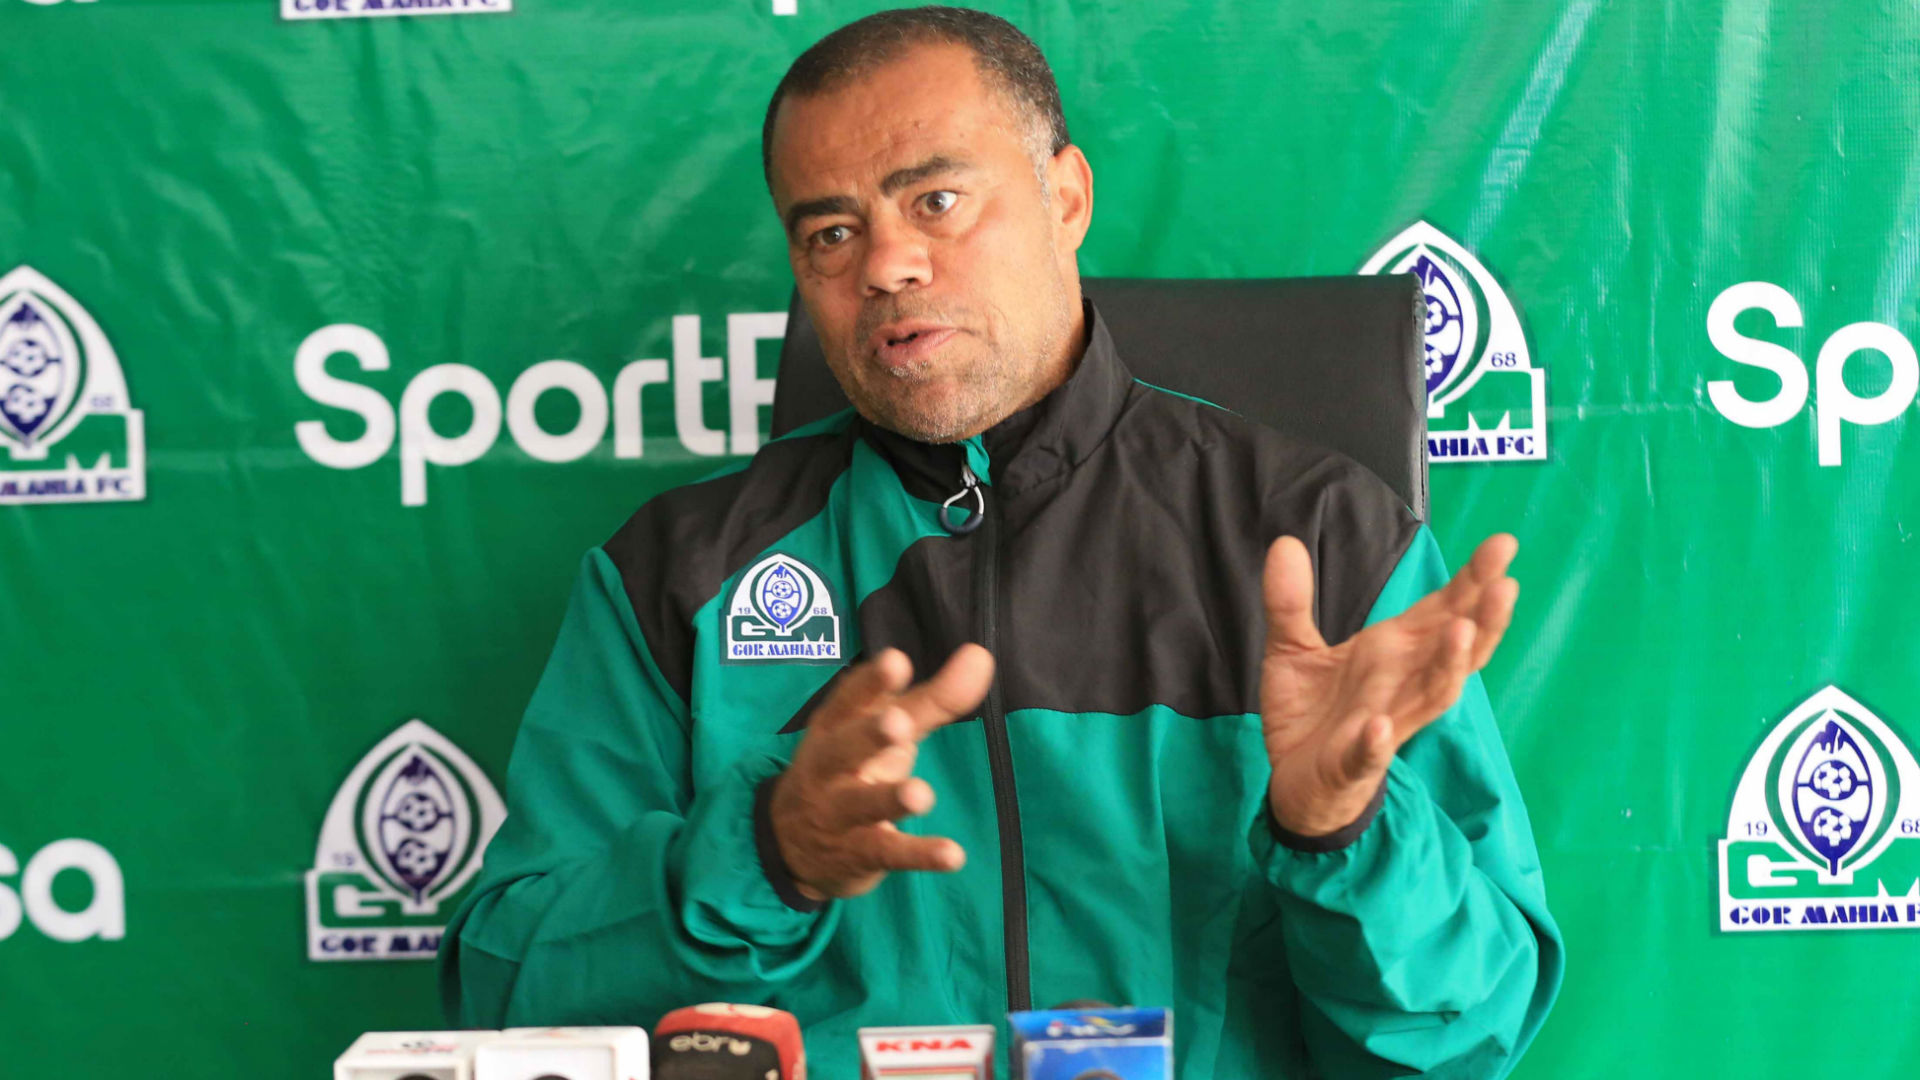 Caf Champions League: Gor Mahia must stay focused vs USM Alger – Polack